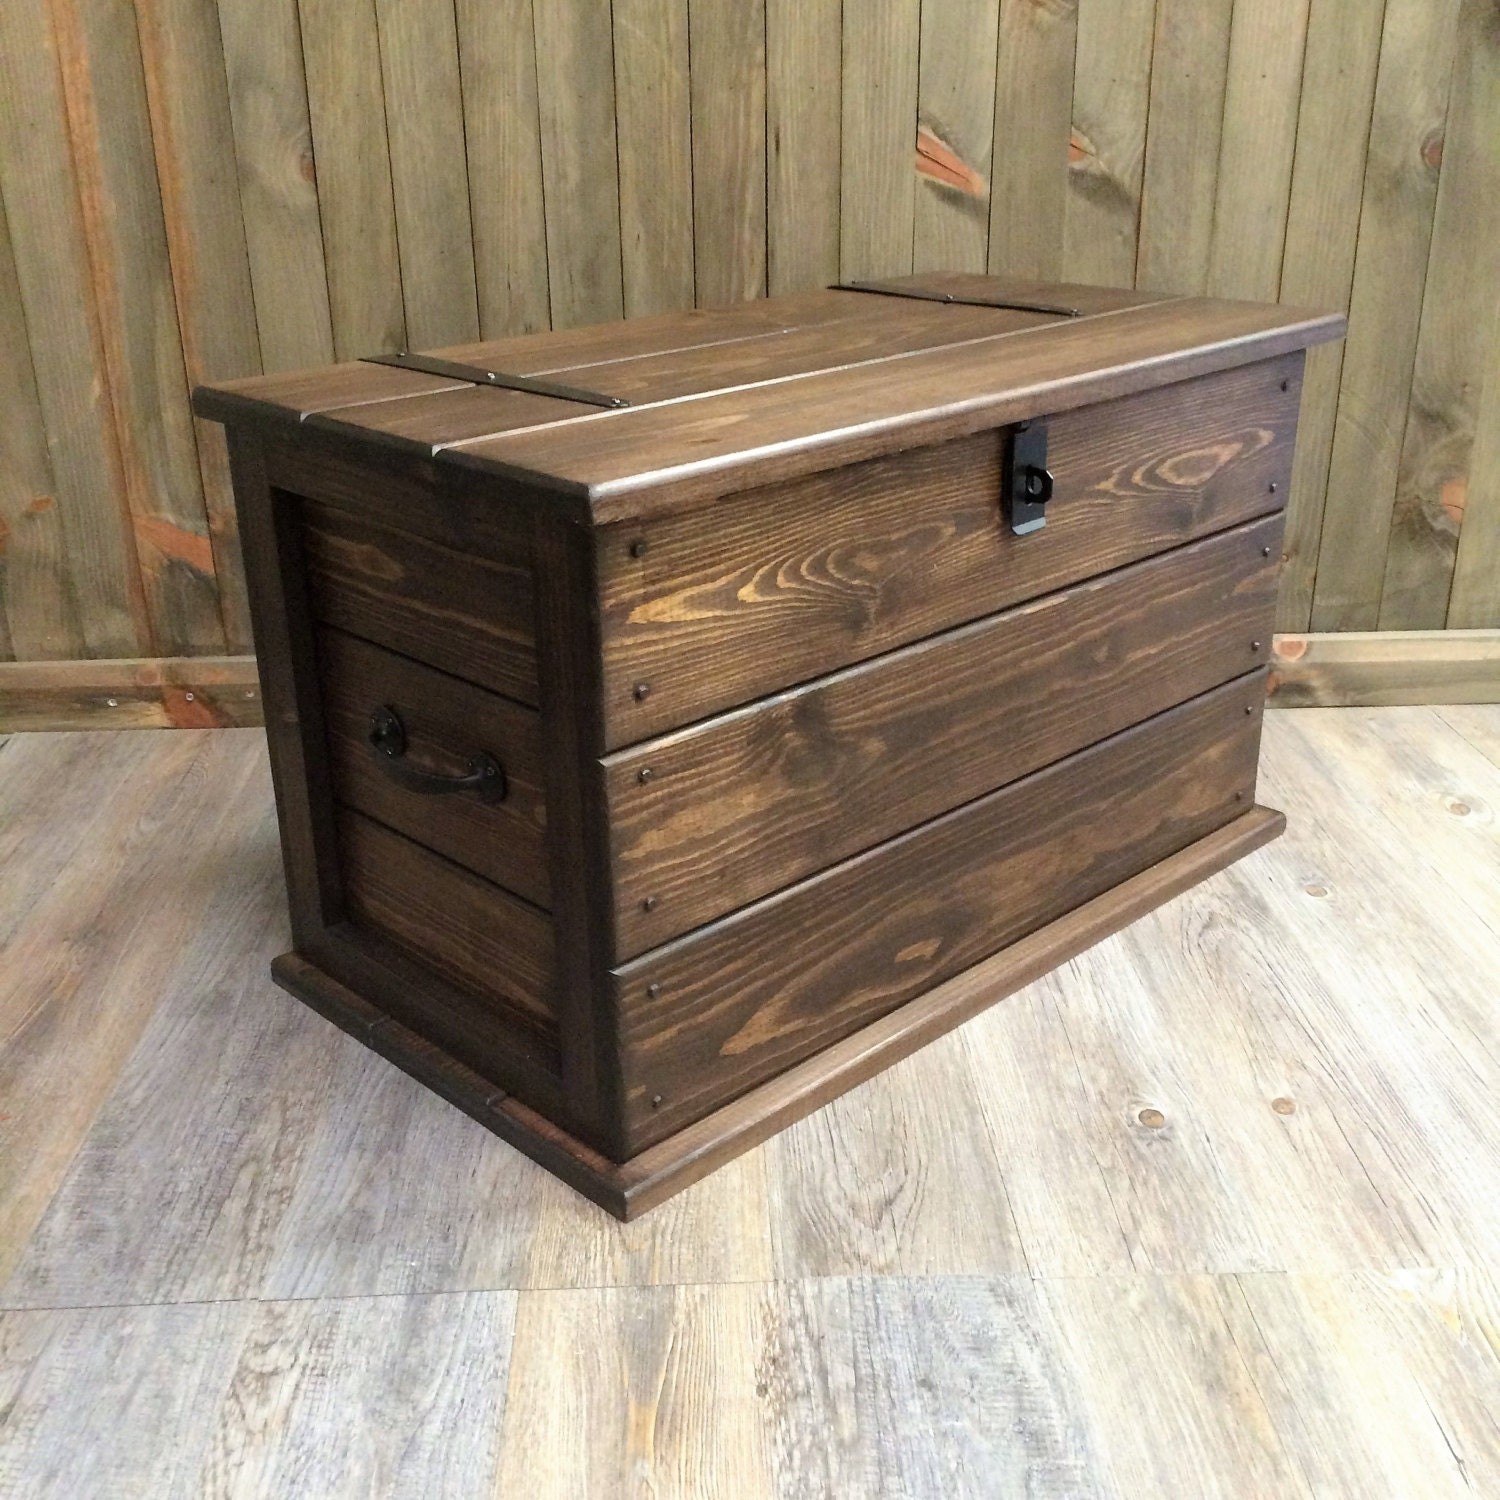 🔎zoom - Handmade Solid Pine Storage Trunk Chest Rustic Farmhouse Toy